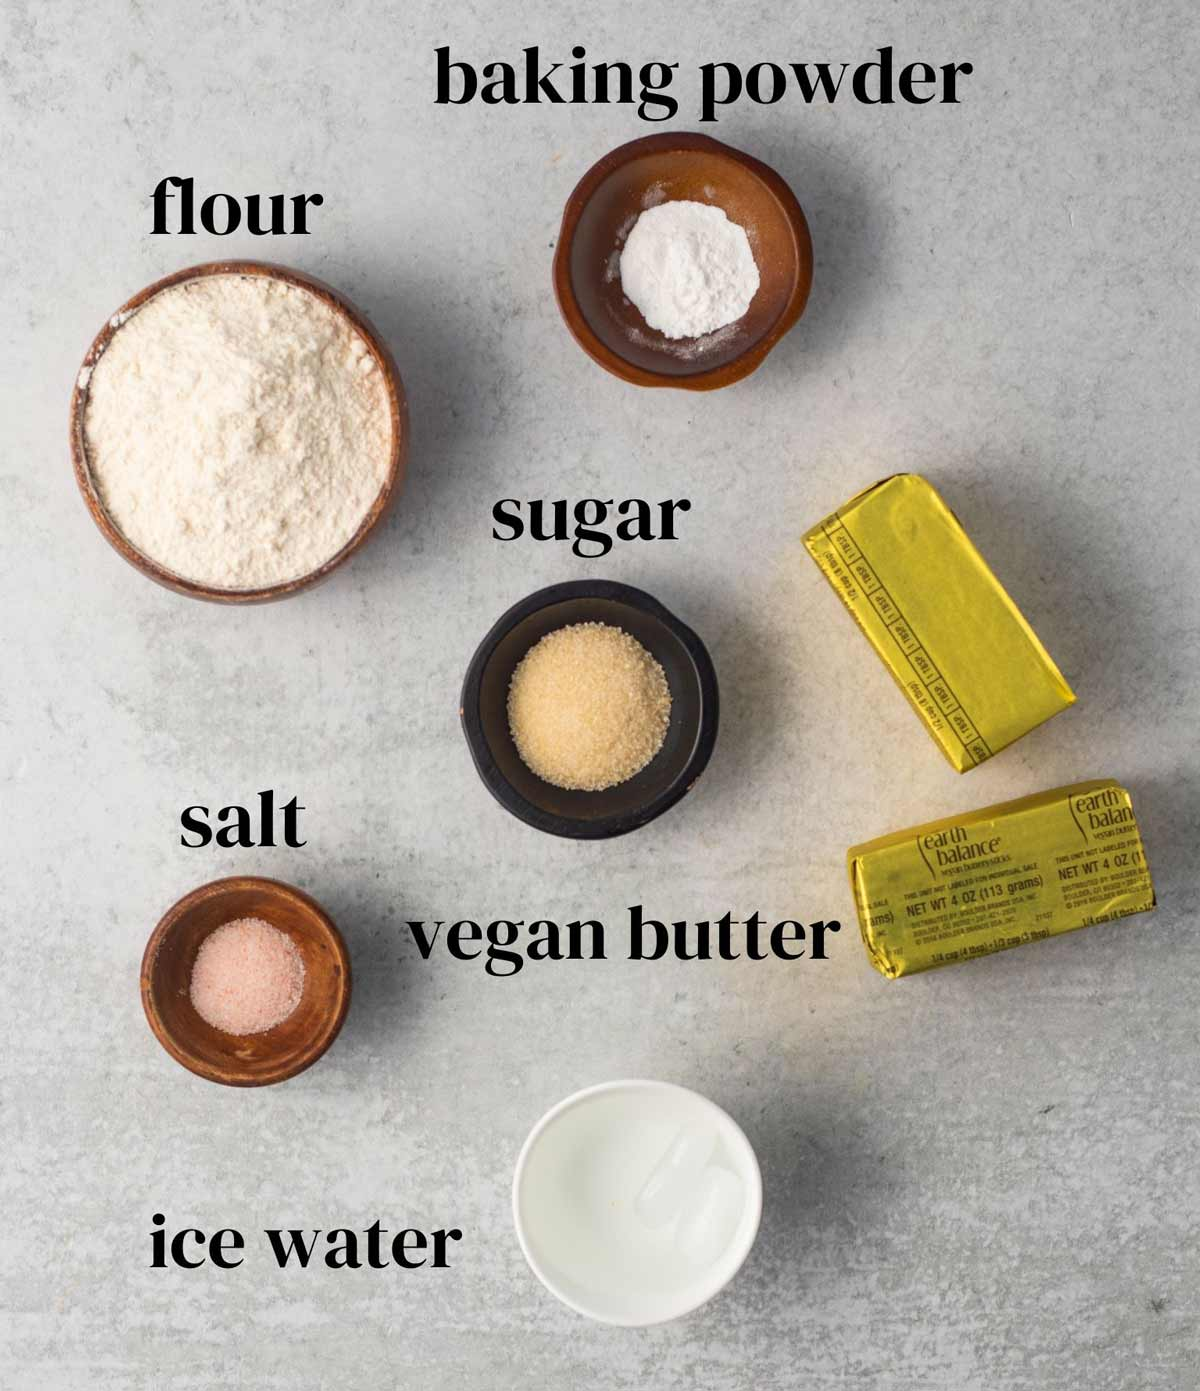 Ingredients laid out on a surface: flour, baking powder, sugar, vegan butter, salt, and ice water.